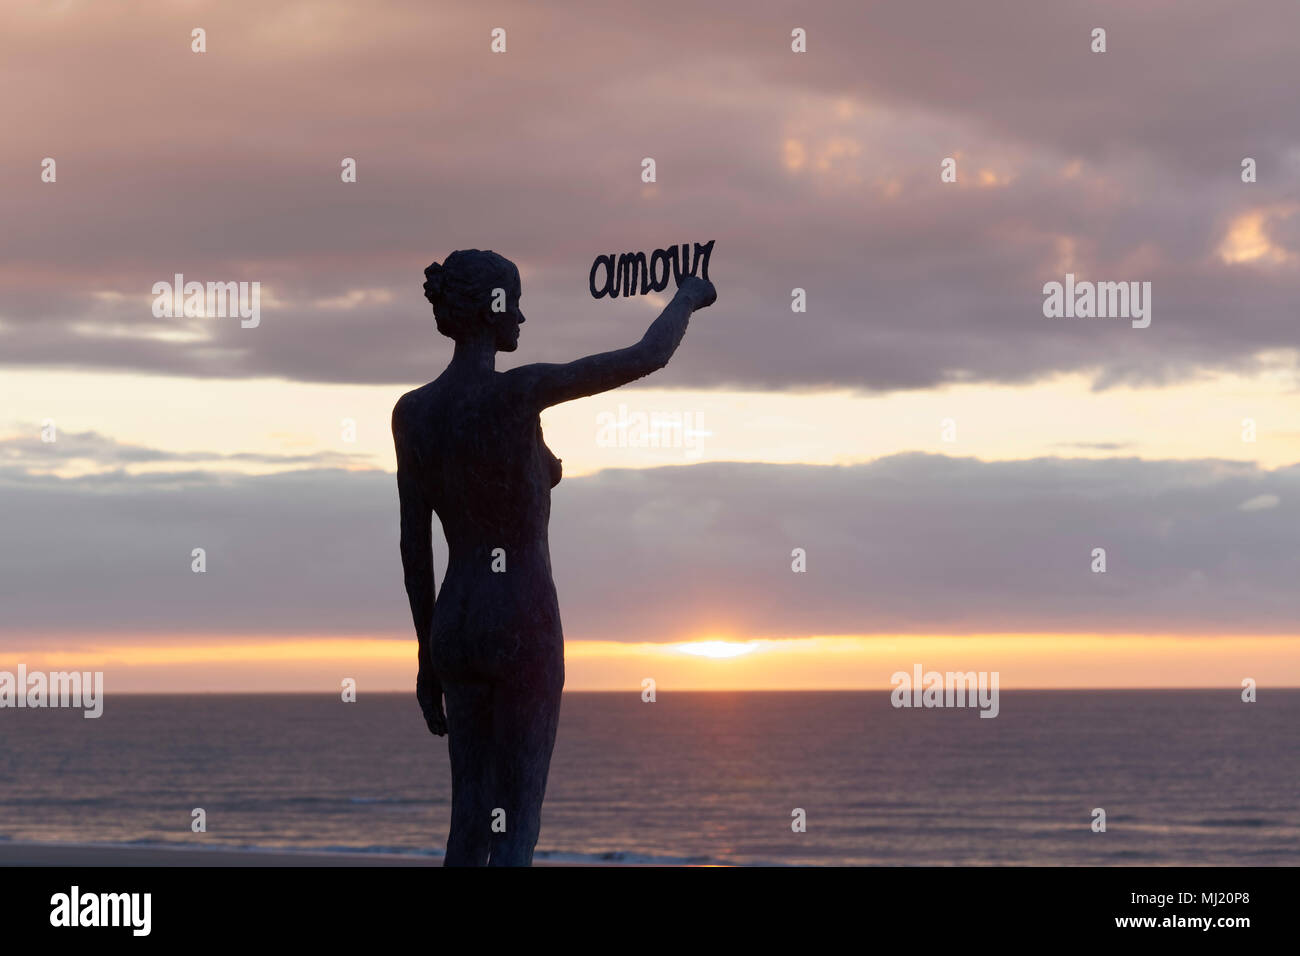 Woman writes French word Amour, Love, in the sky at sunset, bronze sculpture by Belgian sculptor Linde Ergo, De Haan, North Sea - Stock Image